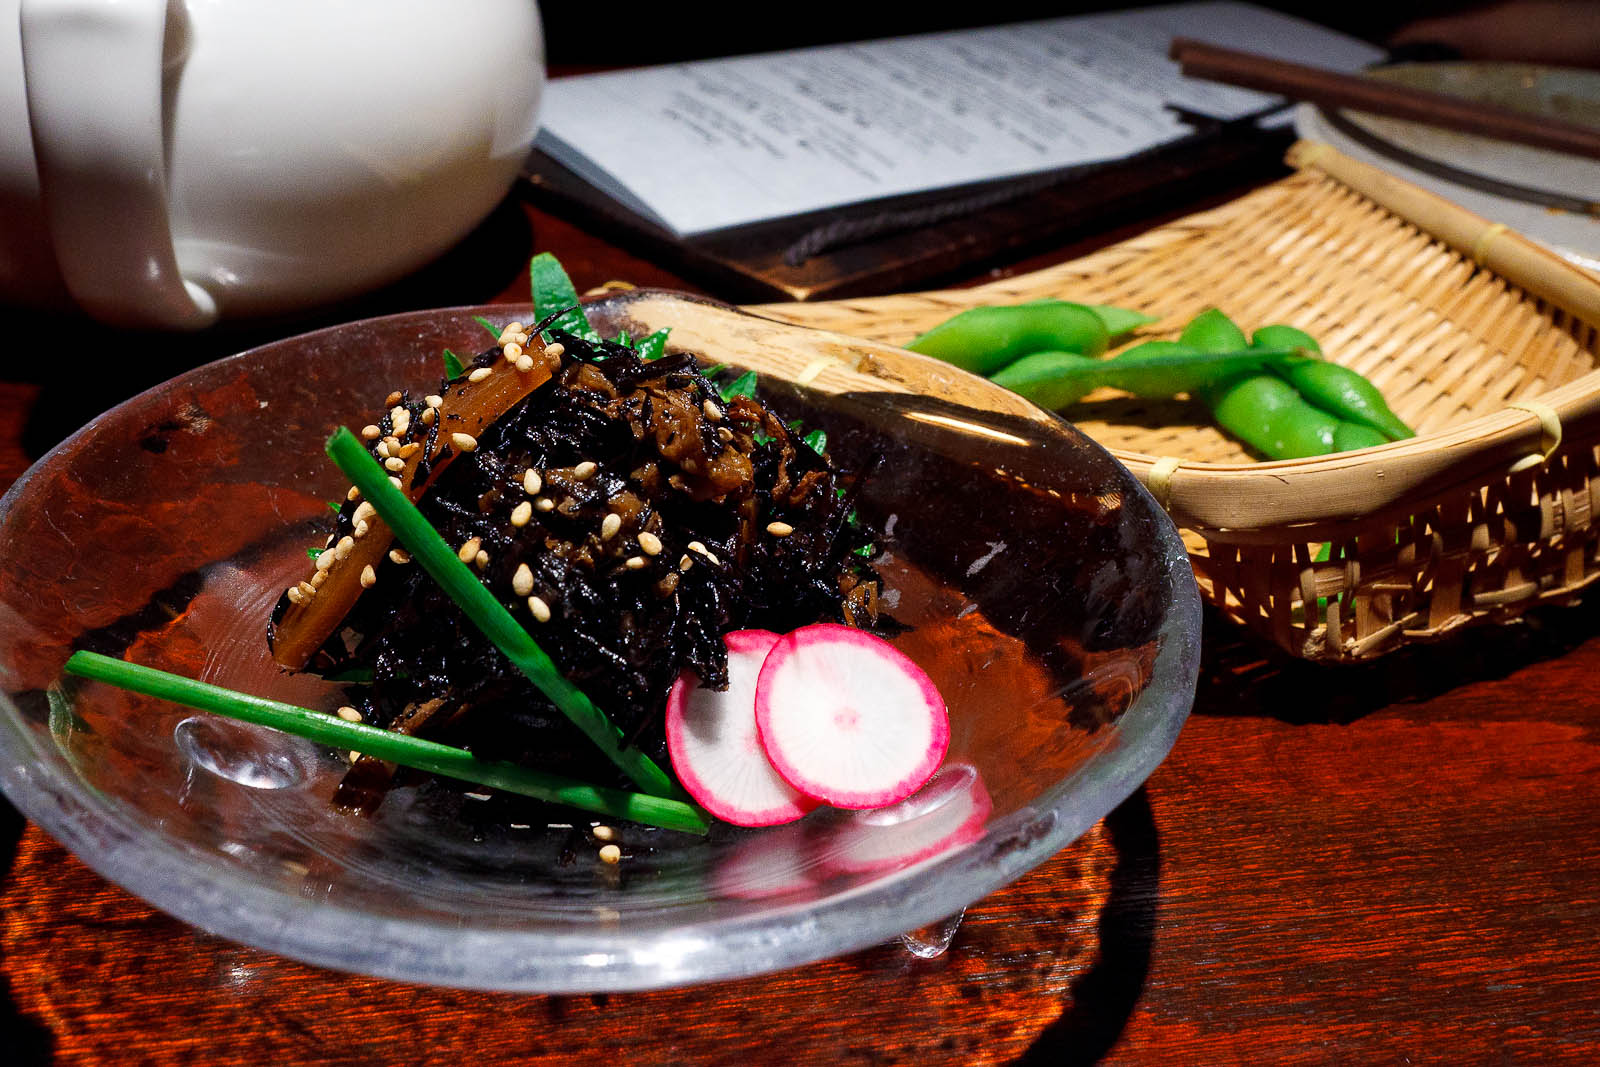 Hijiki: Japanese seaweed simmered in sweet sake and soy sauce ($4.95)